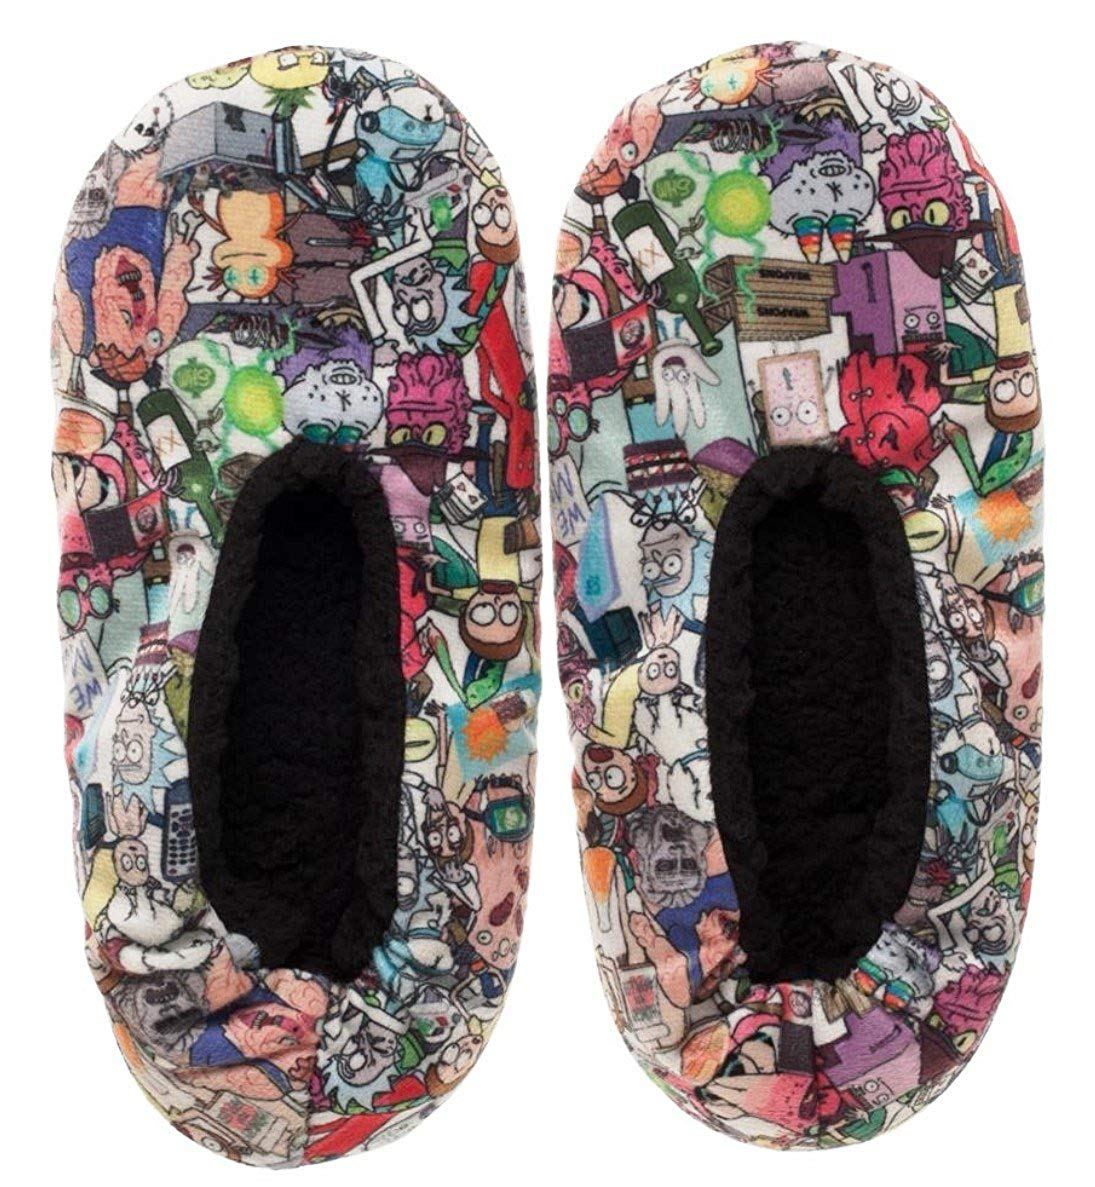 2fd491292b05 Main Street 24 7 Rick and Morty All Over Print Adult Size Plush Cozy  Slippers